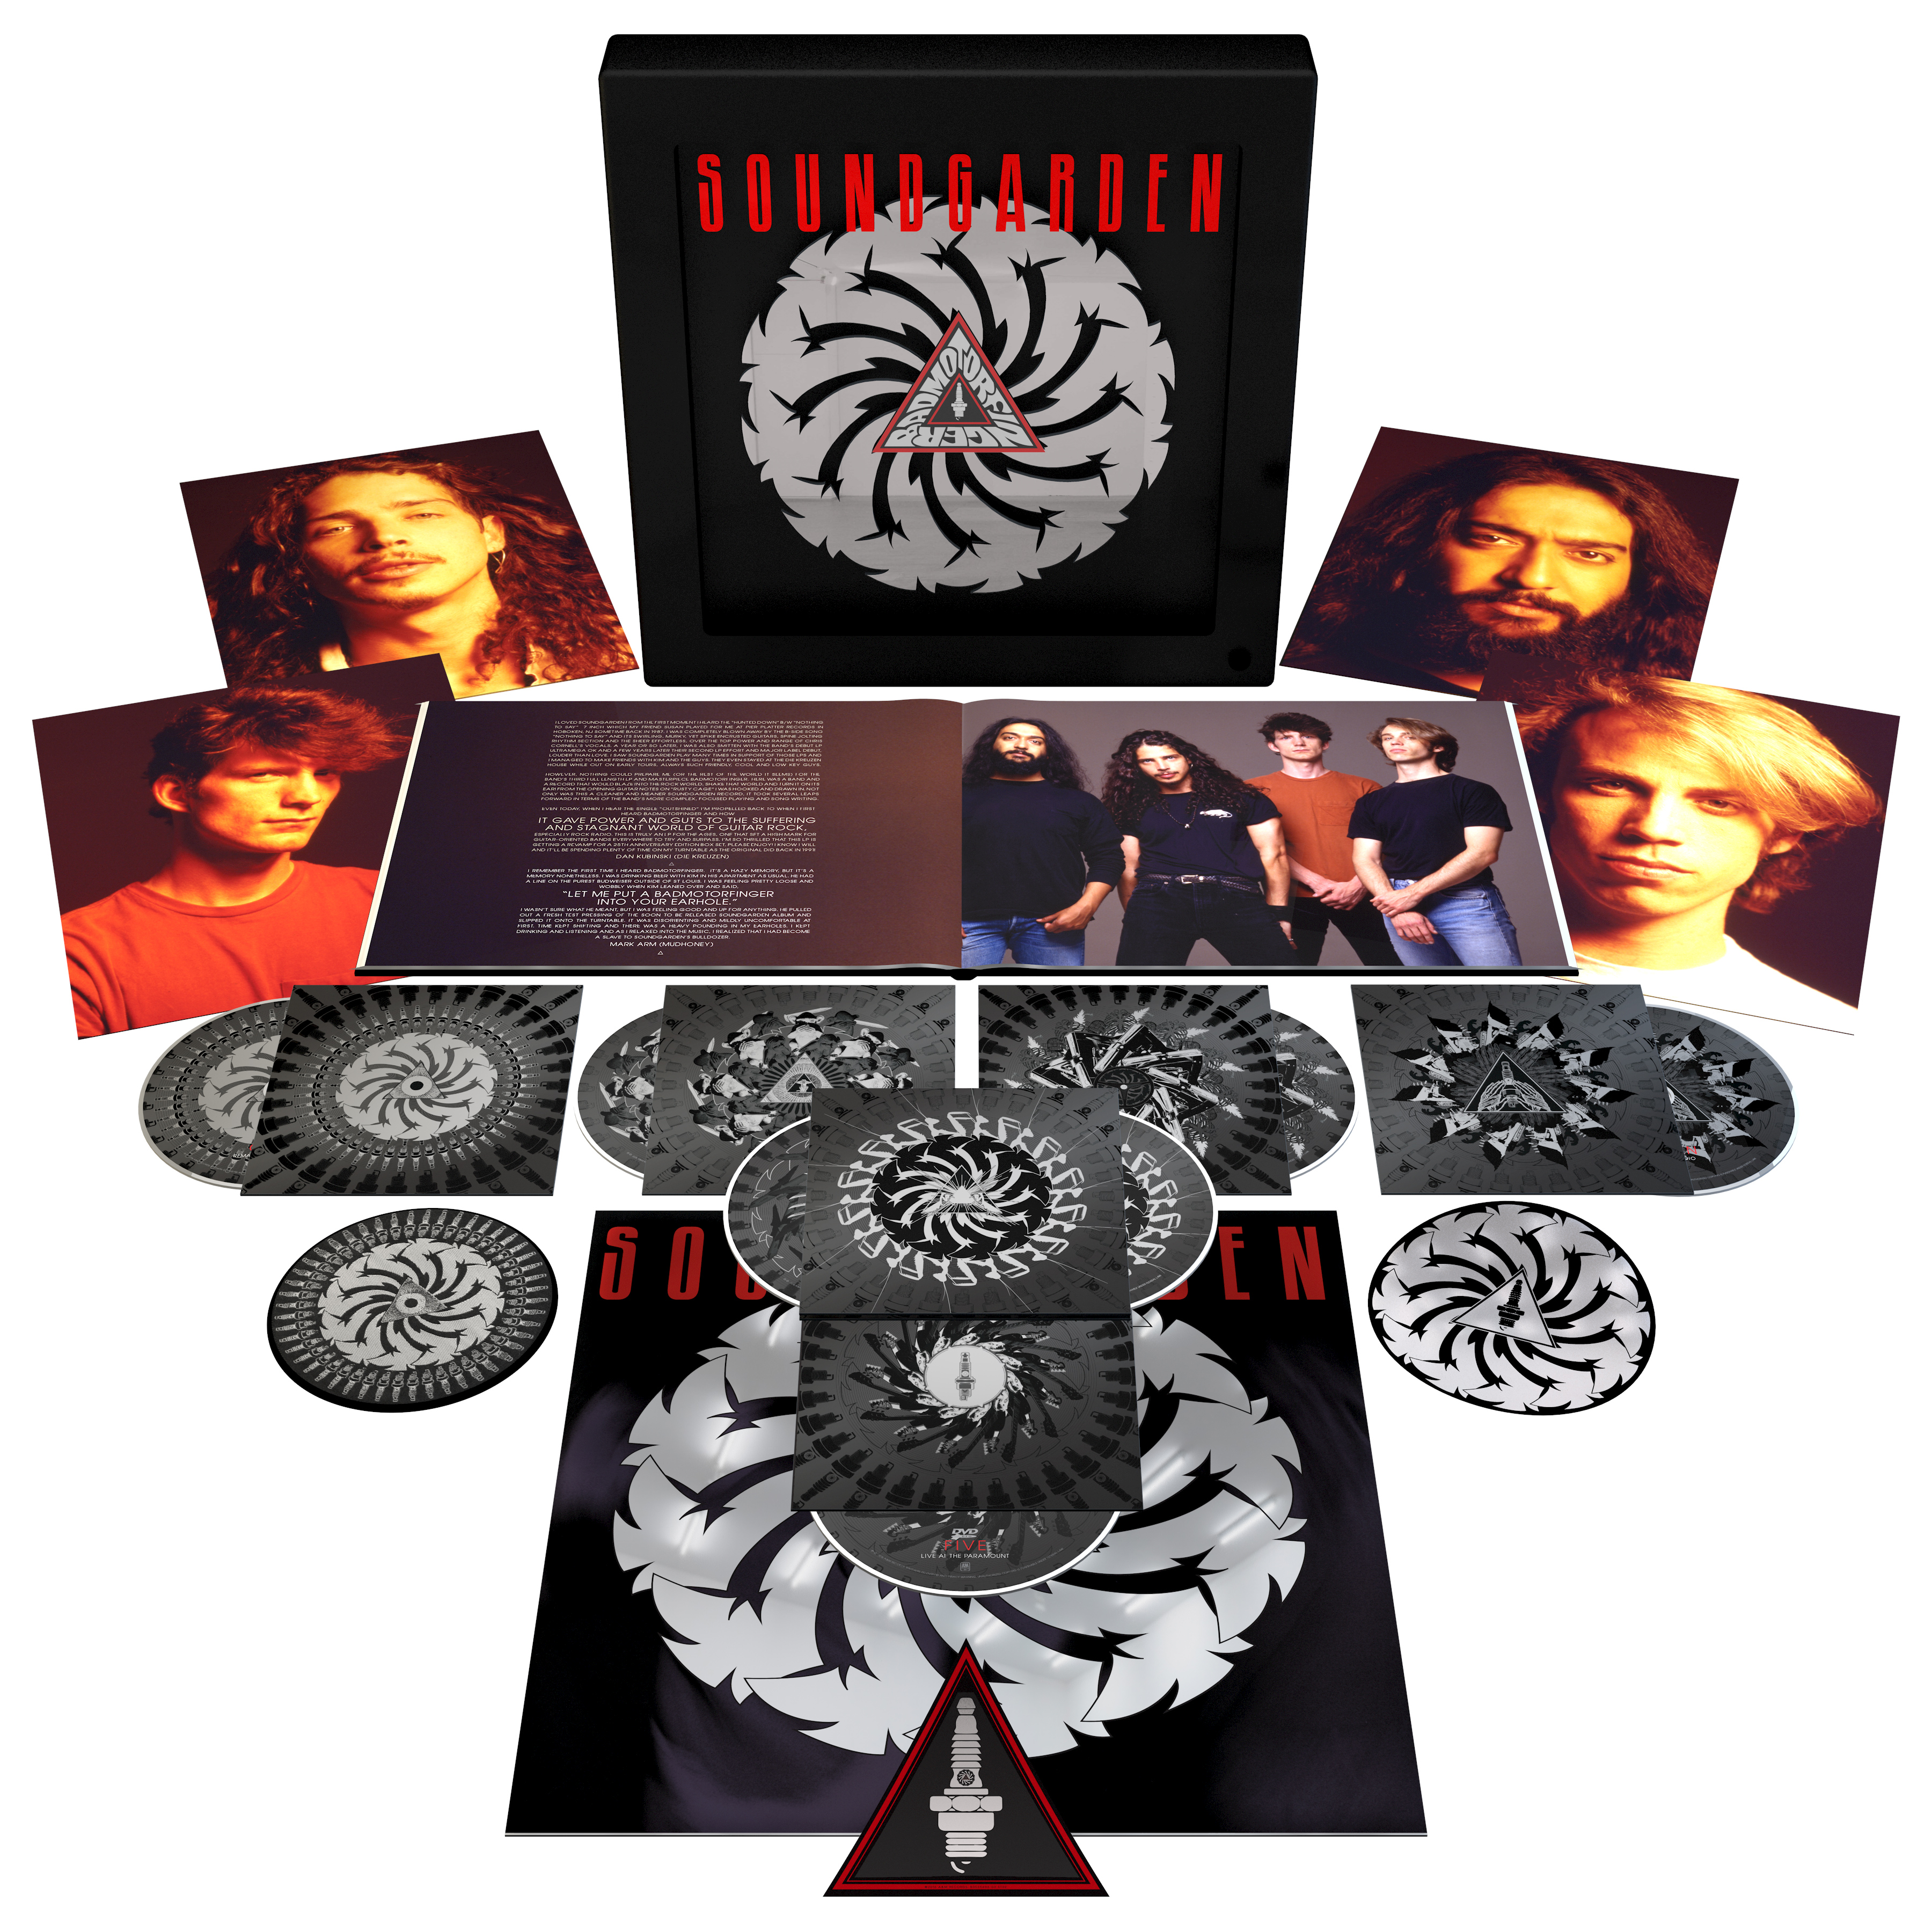 Gallery images and information soundgarden badmotorfinger tattoo - To Celebrate The Anniversary Of Soundgarden S Third Studio Album 1991 S Badmotorfinger The Album Will Be Reissued On November 18th As An Extensive